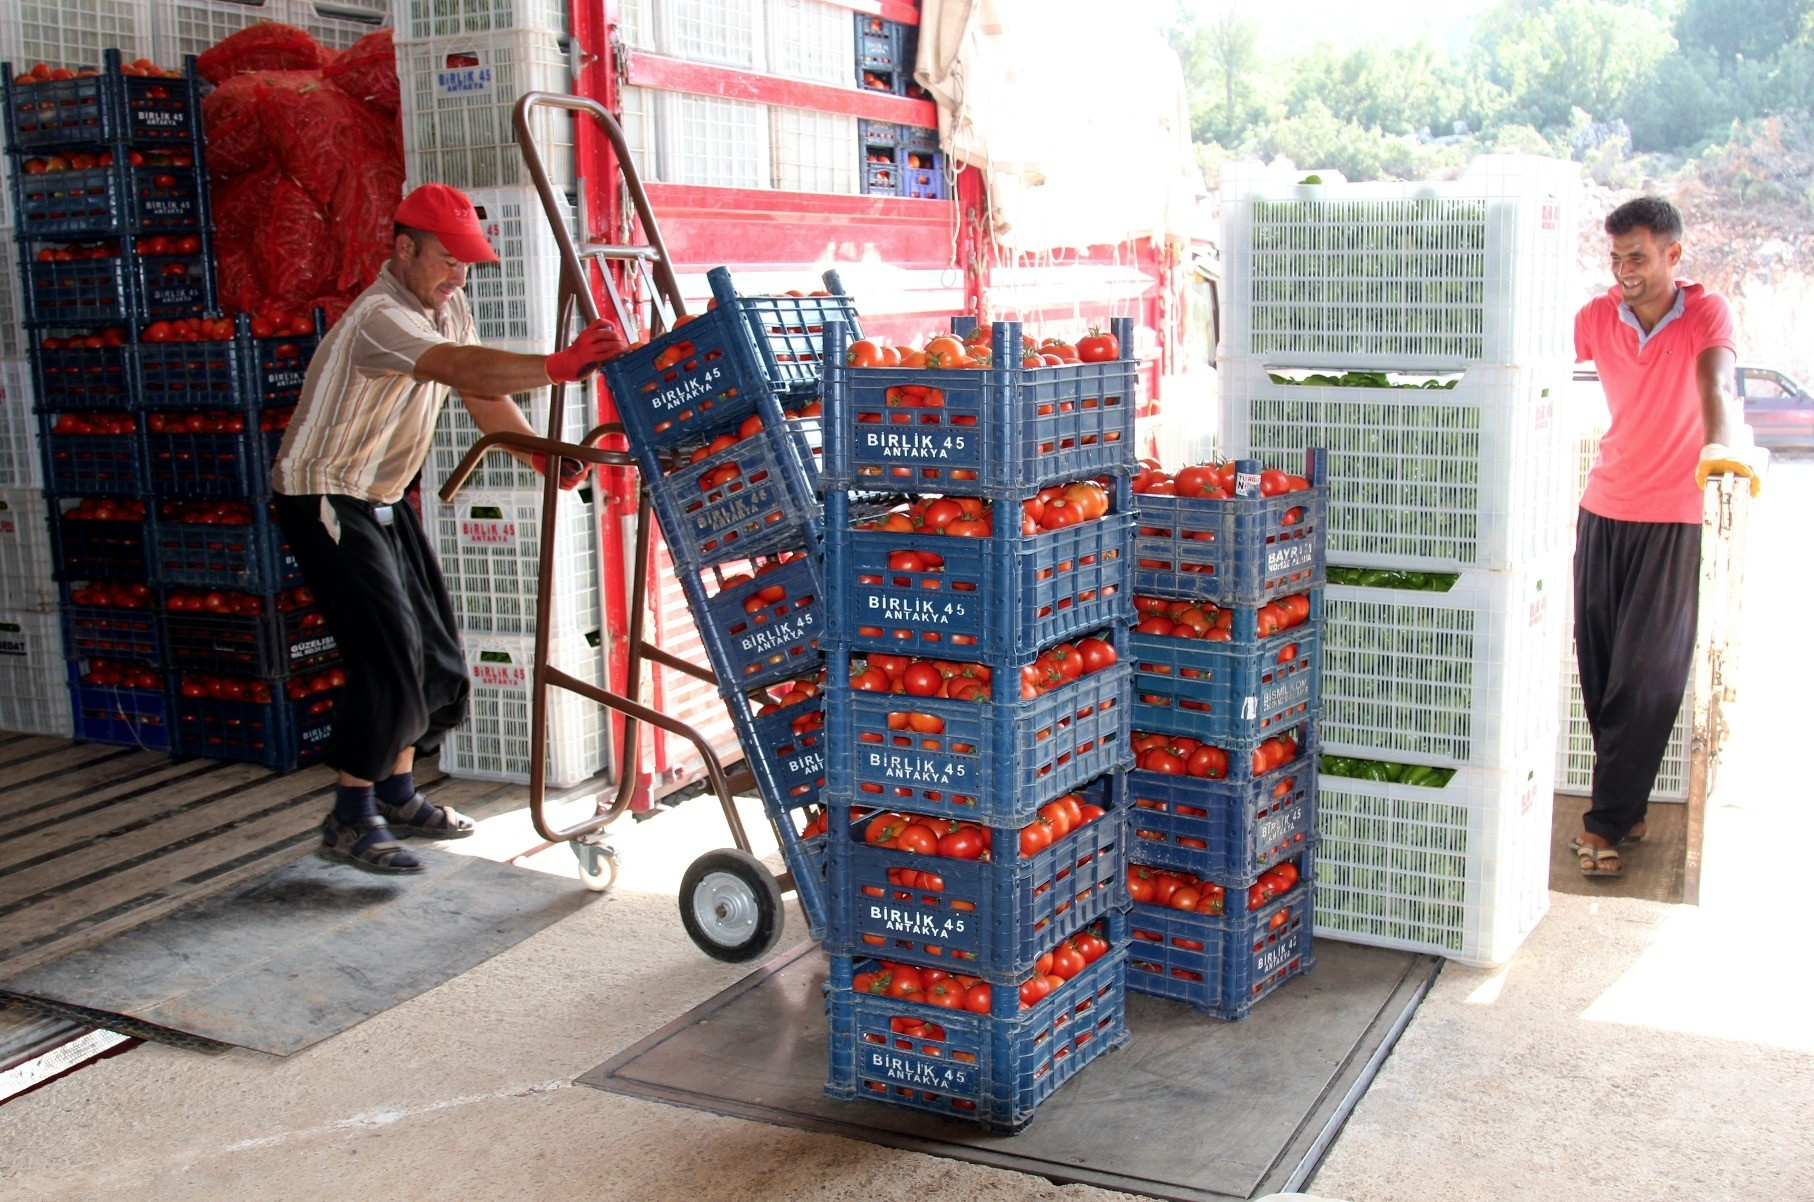 Turkey and Russia signed a memorandum of understanding that includes demands from both sides to resume tomato exports.